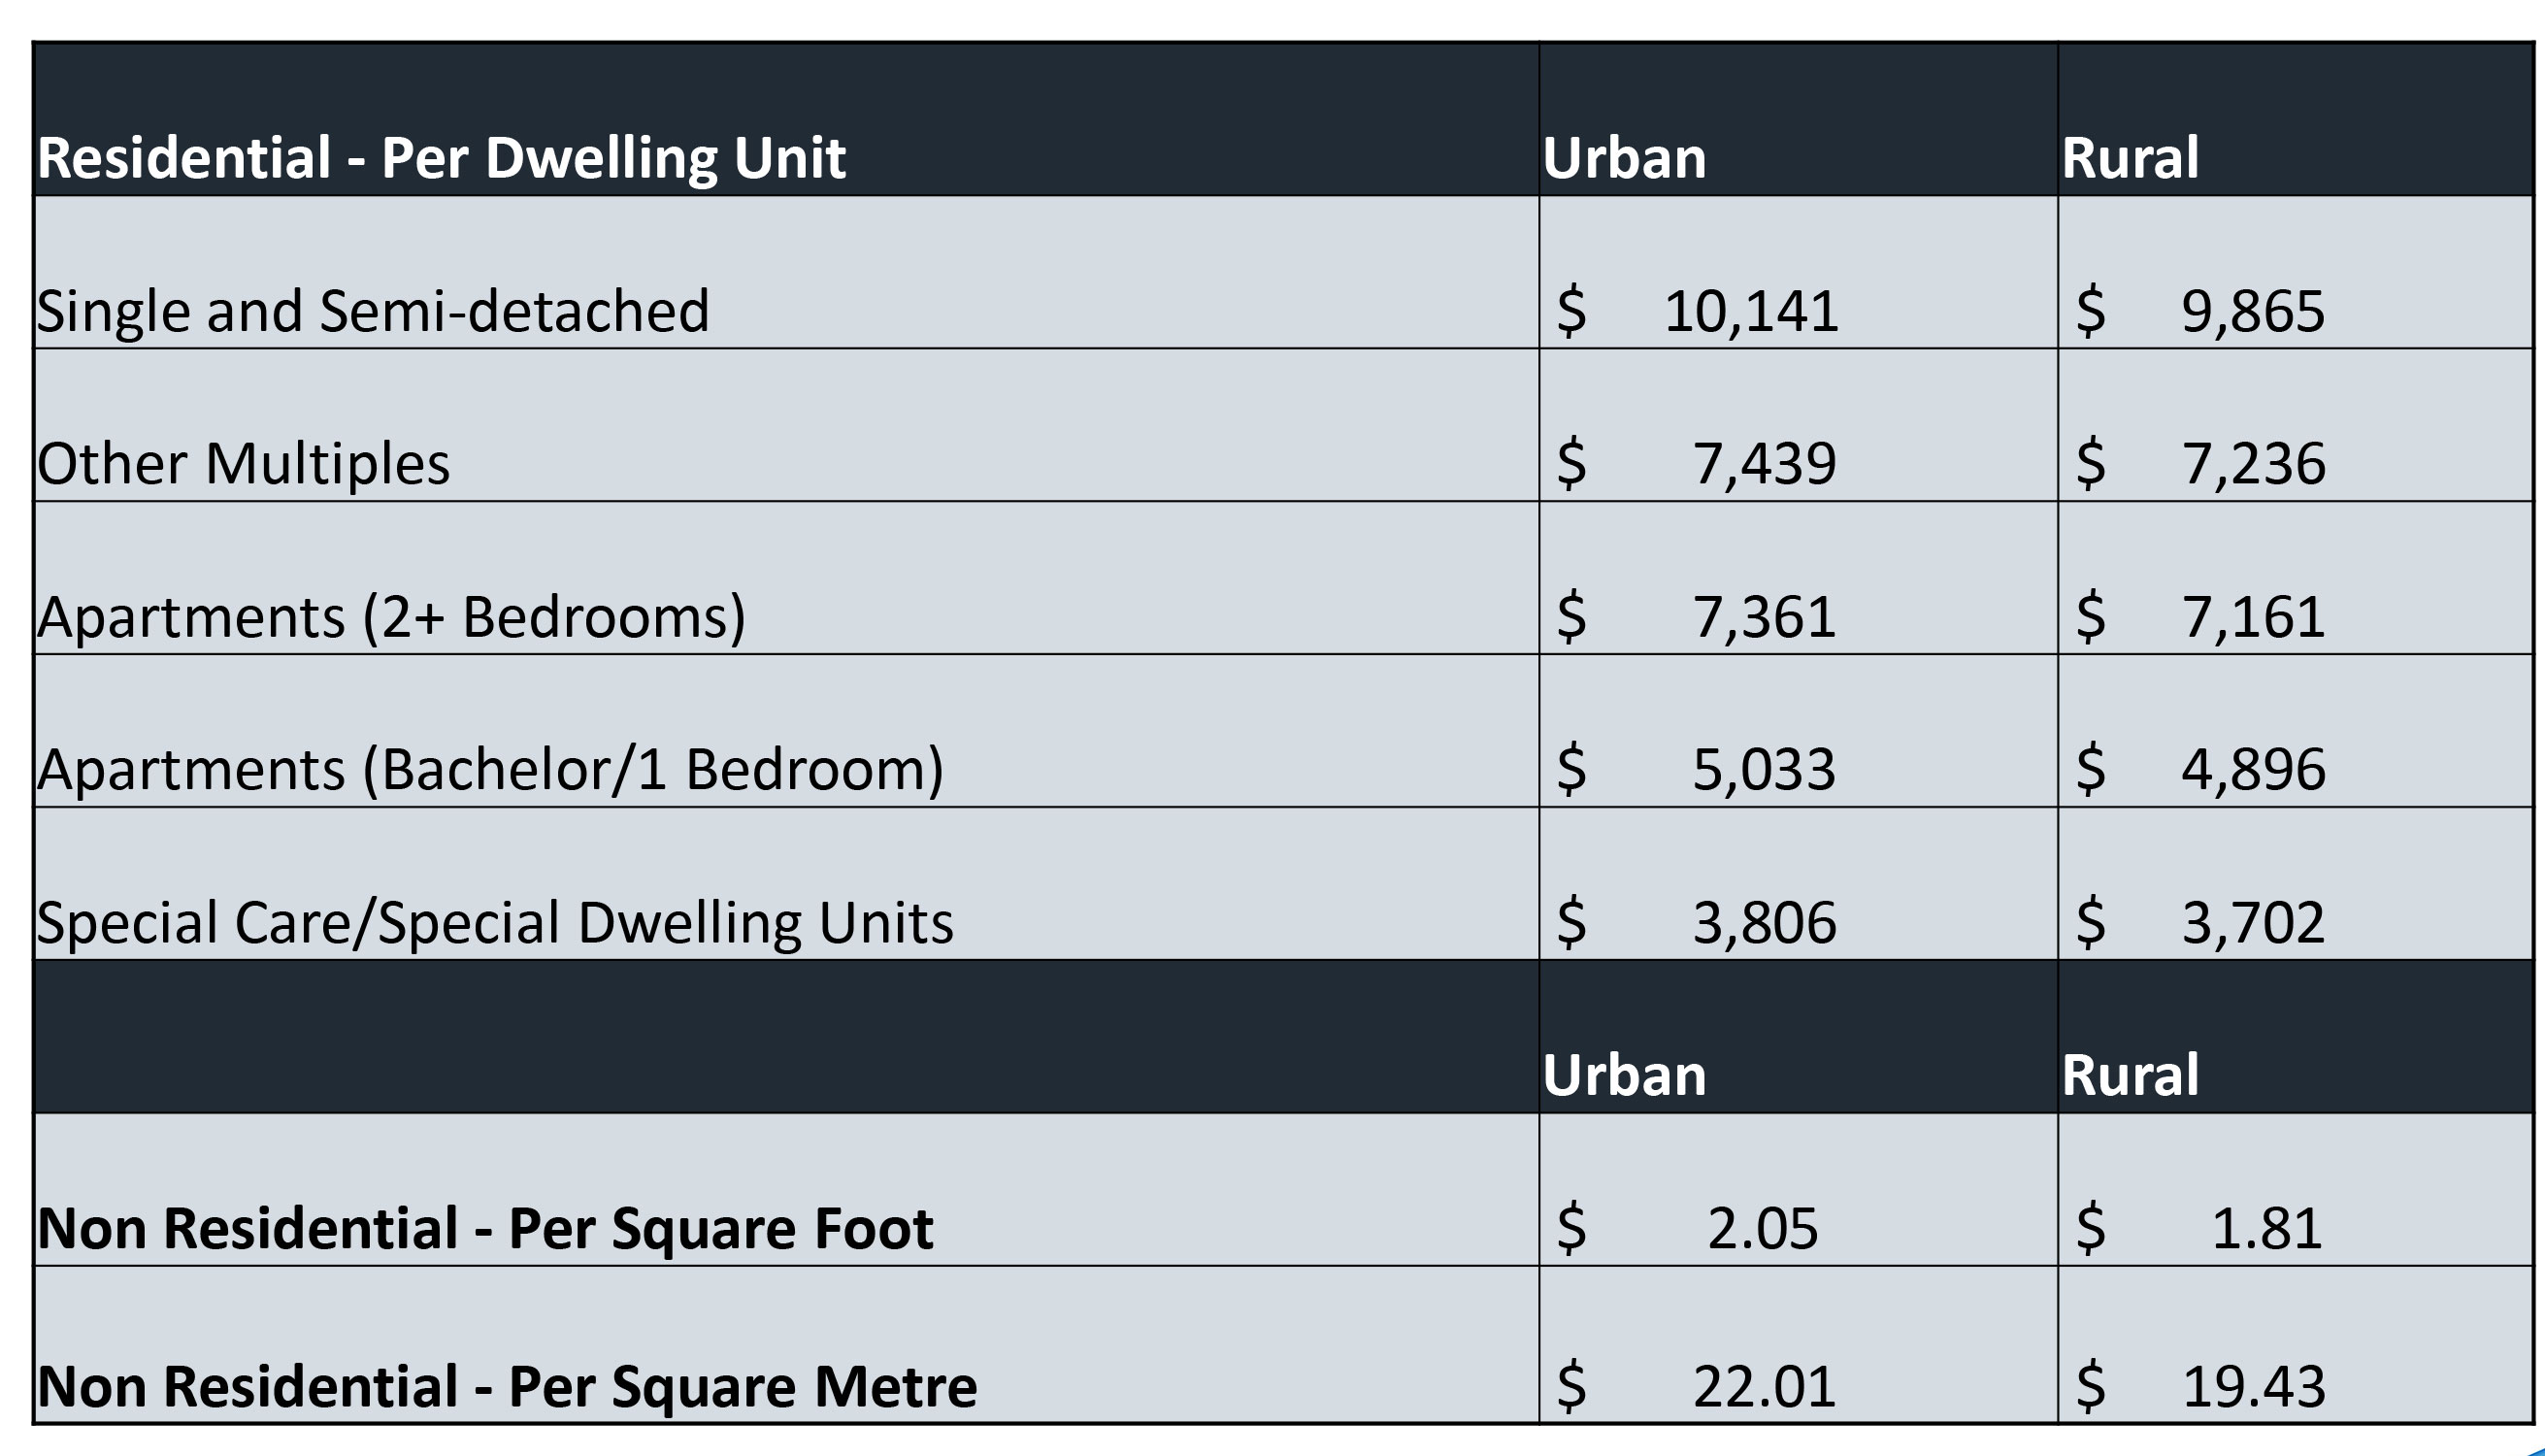 The proposed DC for St. Catharines are as follows, and, as you can see from the table in this slide, are slightly less in rural areas: Residential Single and semi-detached dwellings: $ 10,141 Other multiples: $7,439 Apartments (2 bedrooms plus): $ 7,361 Apartments (bachelor and 1 bedroom): 5,033 Special care/special dwelling units: $ 3,806 Non-residential Per sq. ft. of gross floor area: $ 2.05 Non Residential - Per Square Metre 22.01